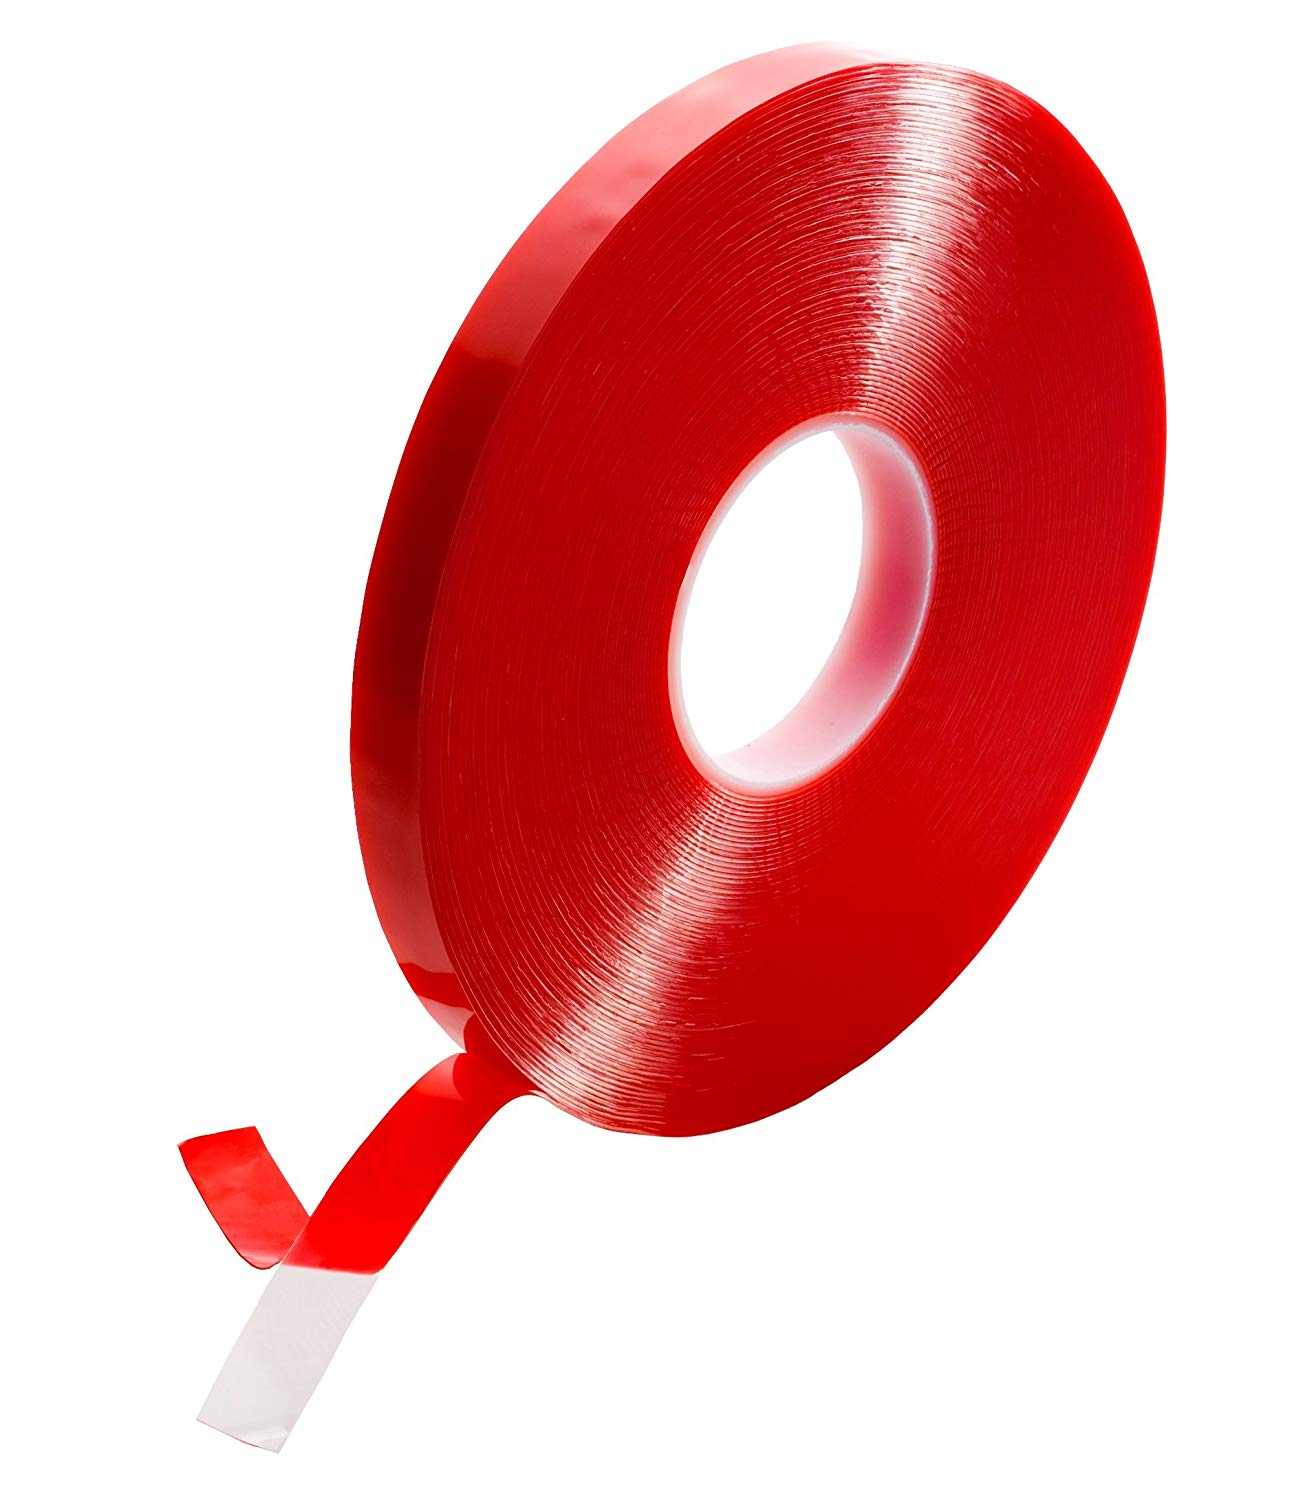 """T.R.U. FA-UHB10C Double Coated Acrylic Foam Tape Clear. 36 Yds Length. Available In Multiple Sizes. (1/2"""" (12.7mm))"""